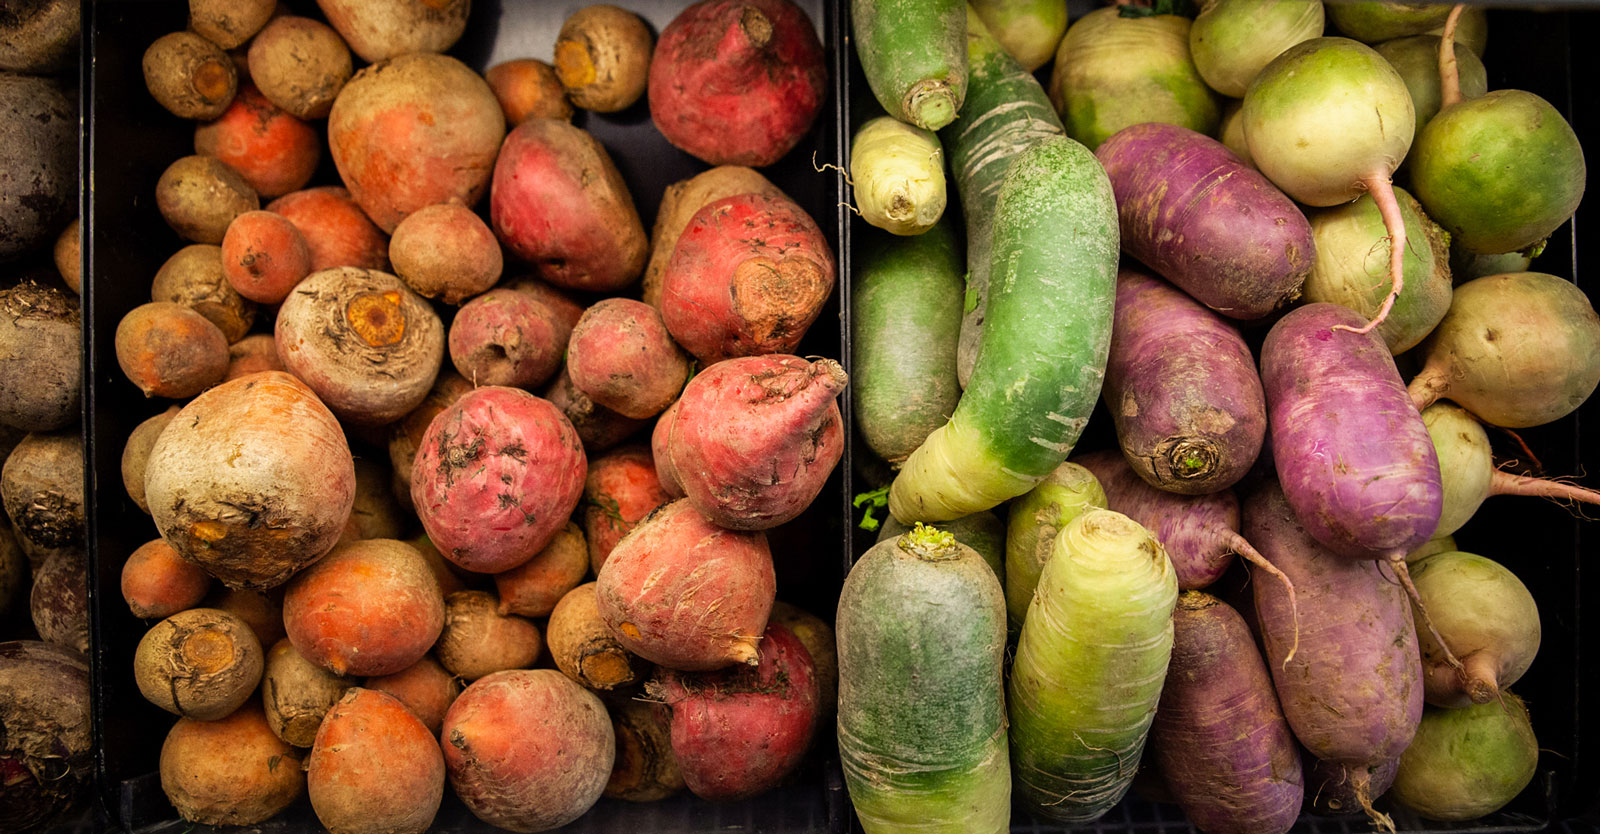 A colorful array of different types of potatoes.